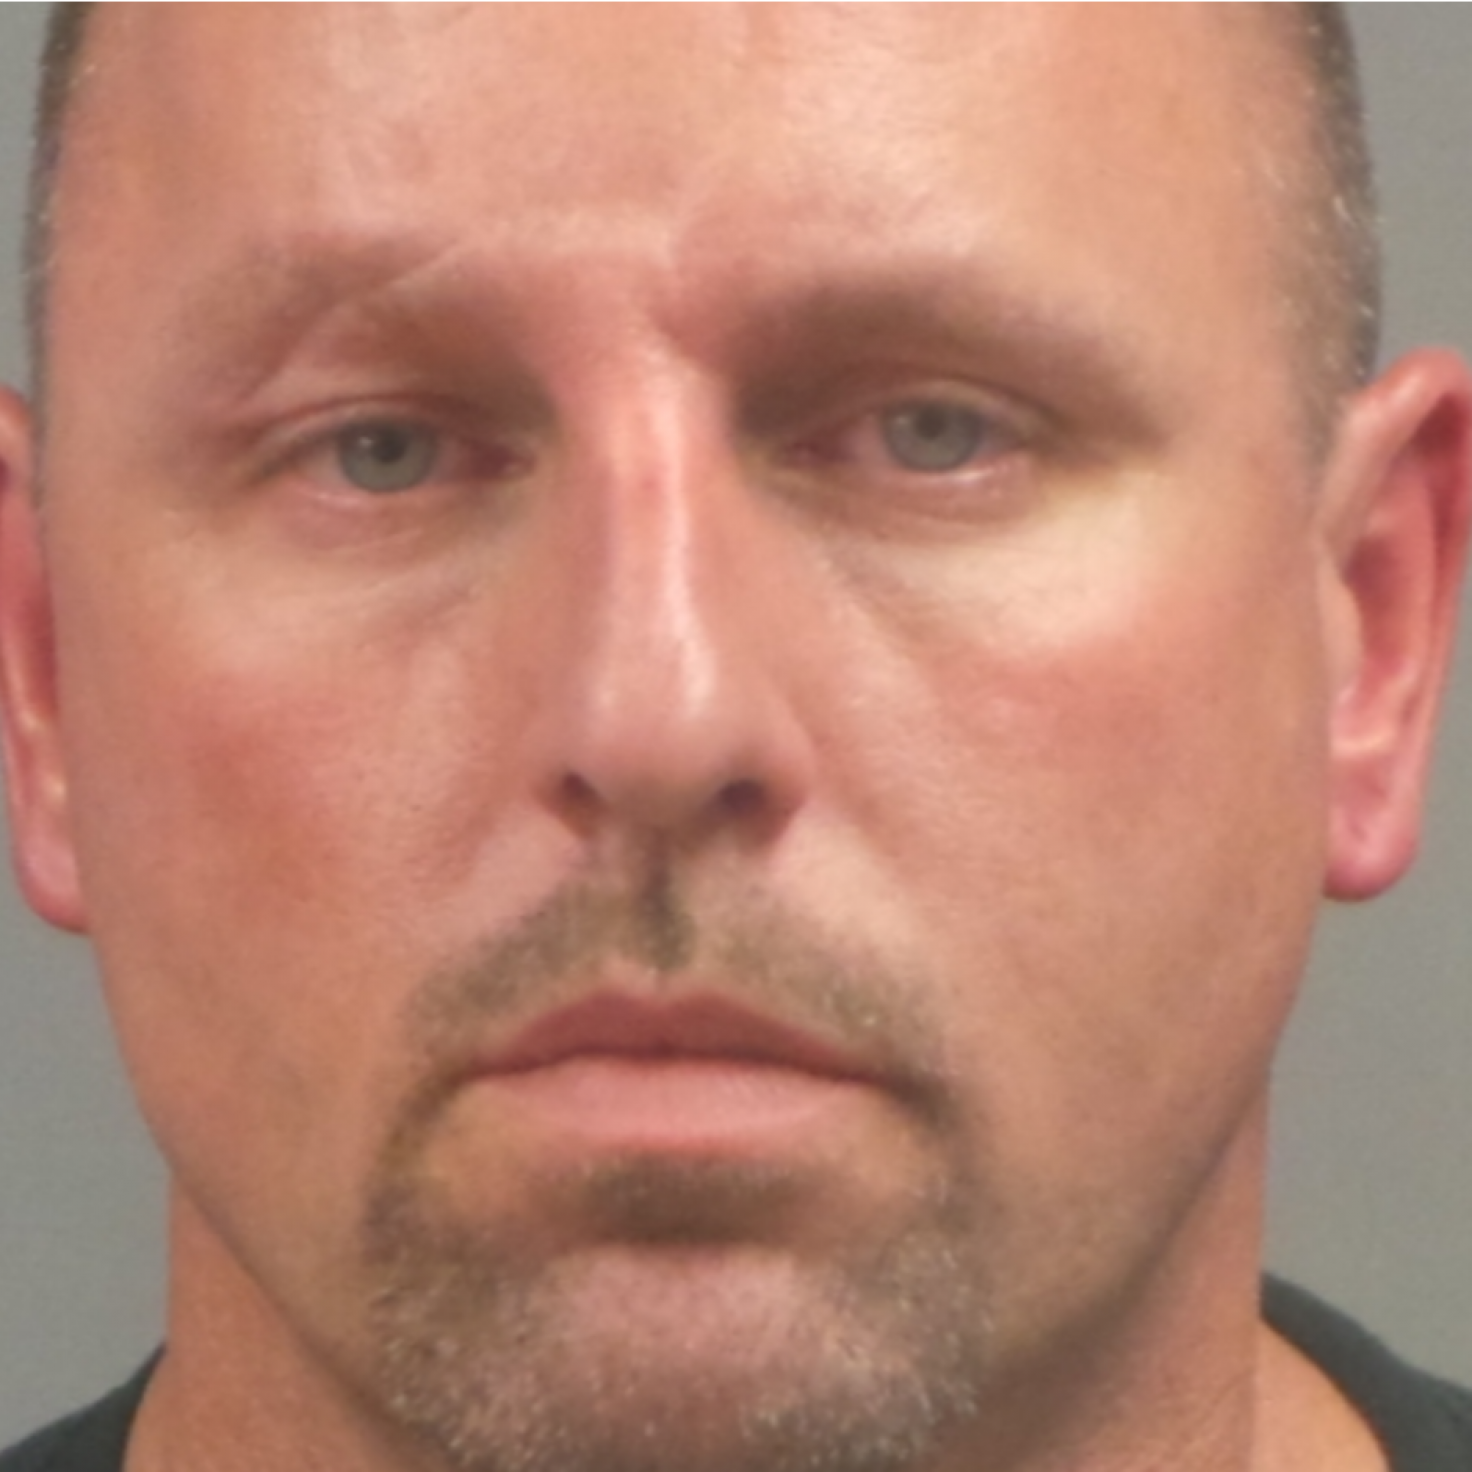 Missouri Man Charged With Shooting Black Woman In Face After Month On The Run